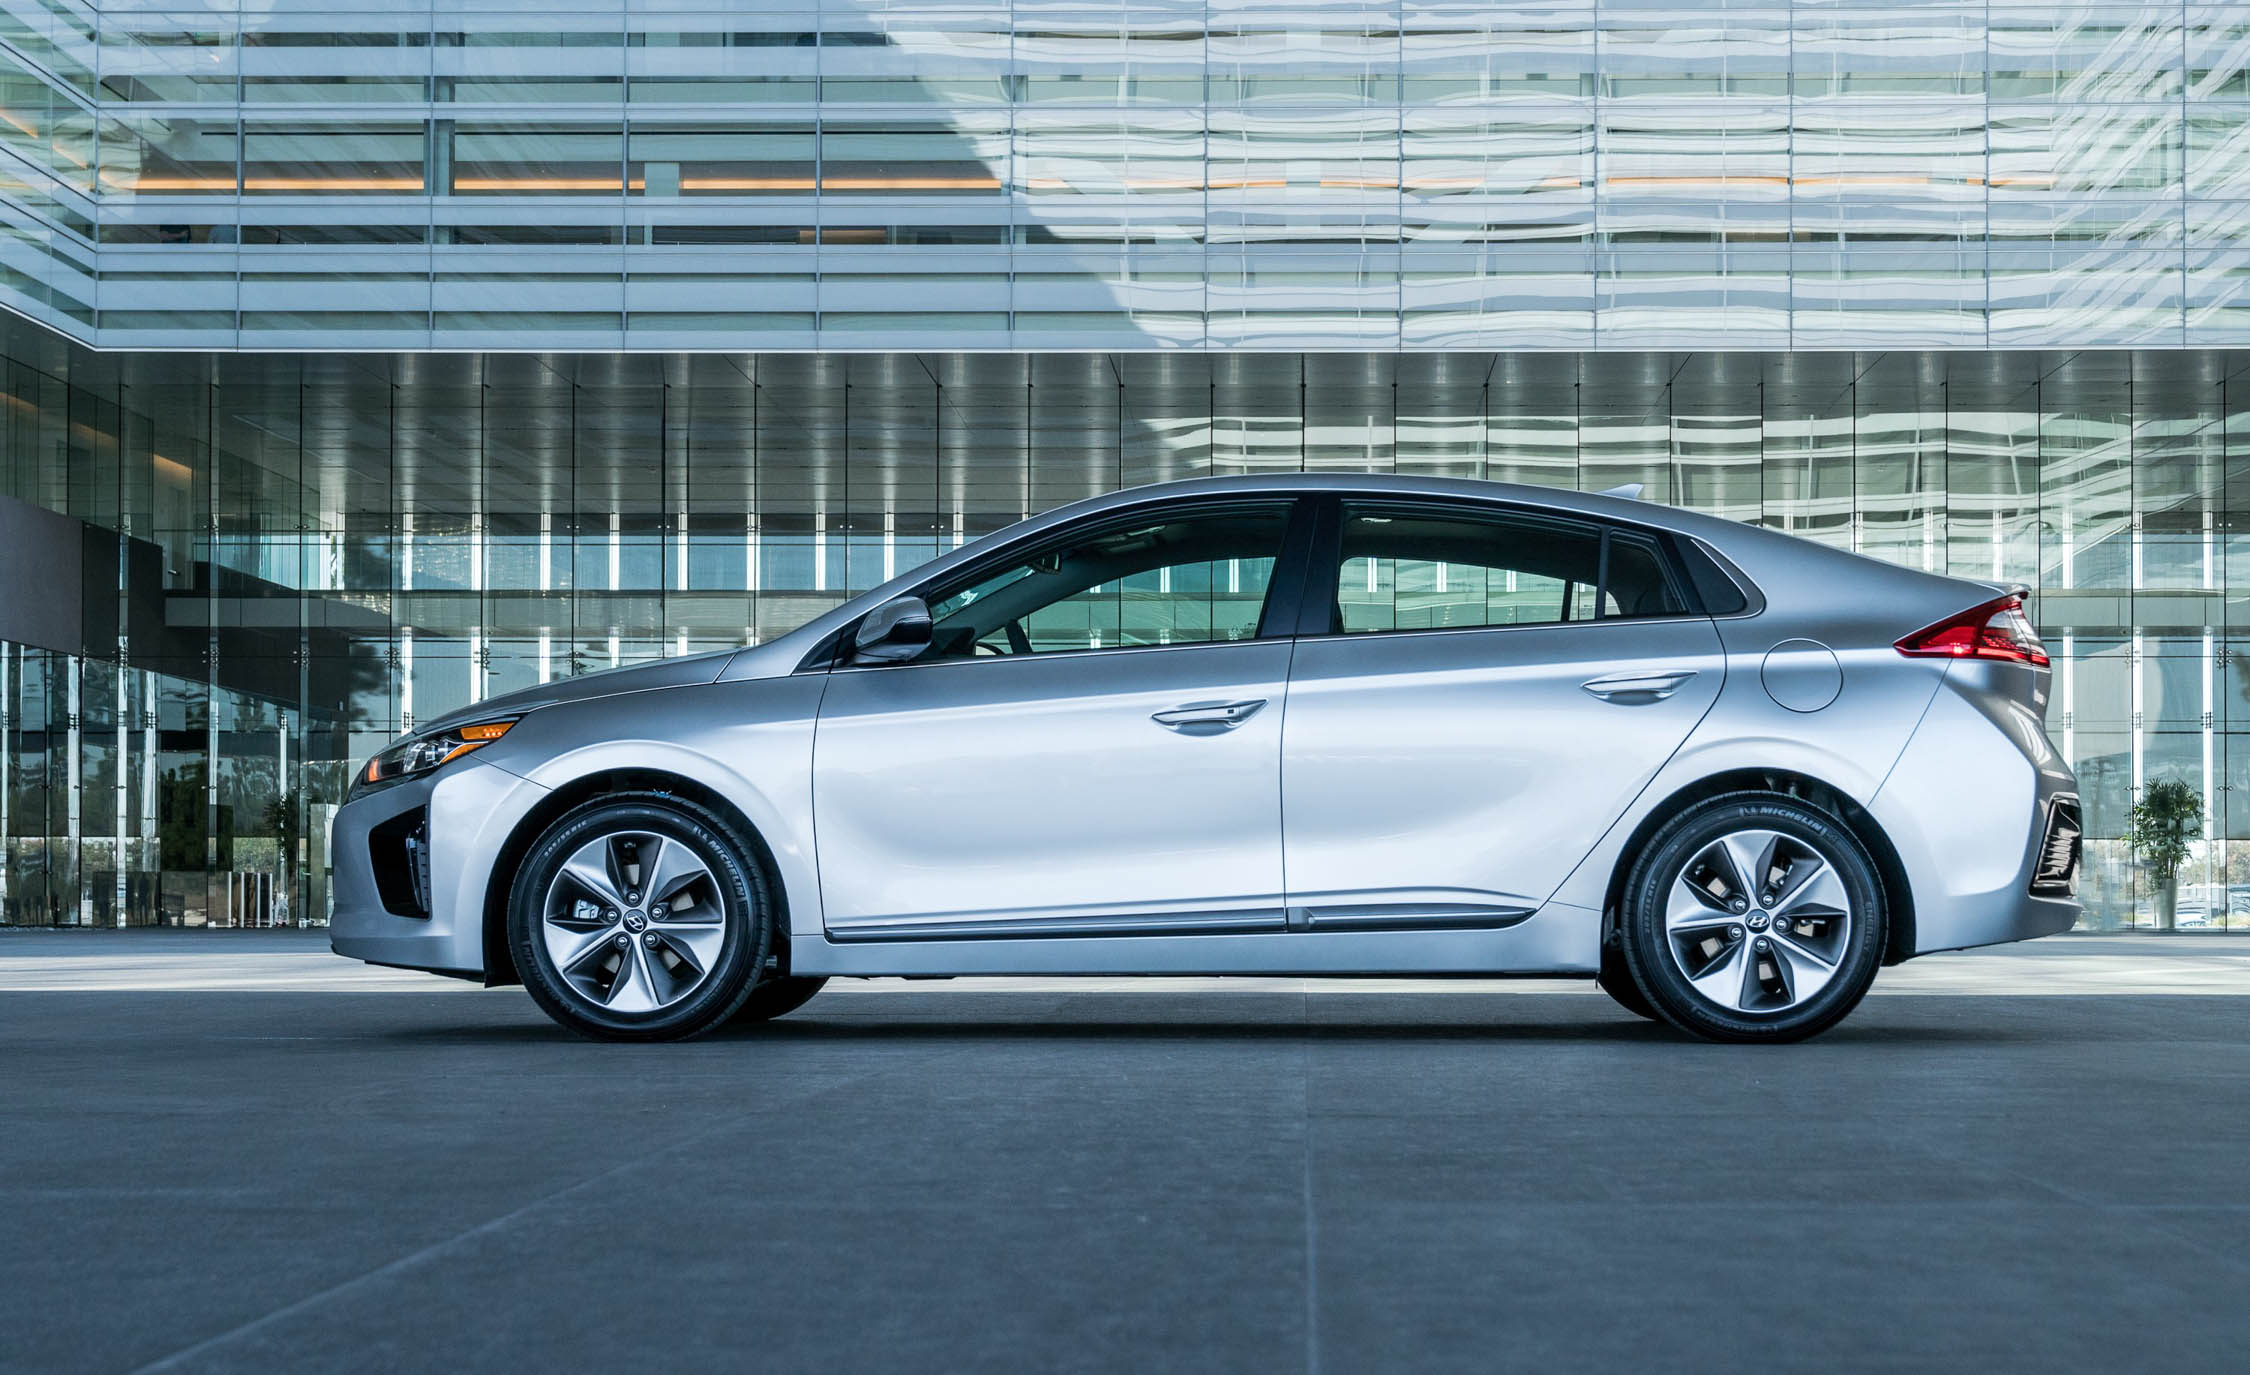 2017 Hyundai Ioniq Electric Exterior Side Profile (Photo 8 of 67)